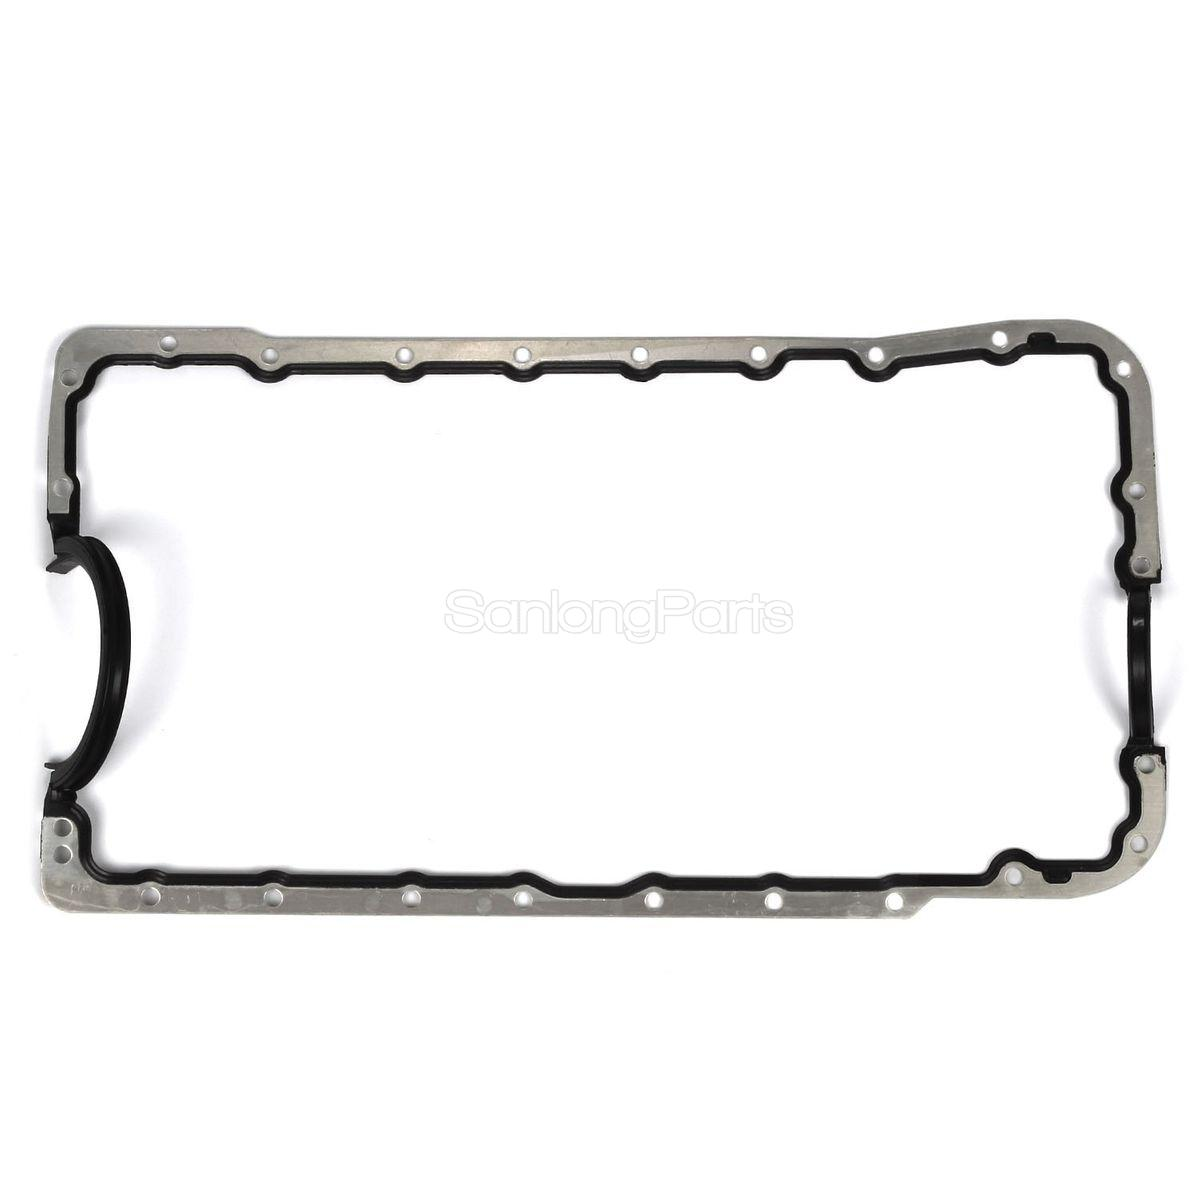 Fits 97-11 Ford 4.0L SOHC Lower Gasket Set w/ oil pan